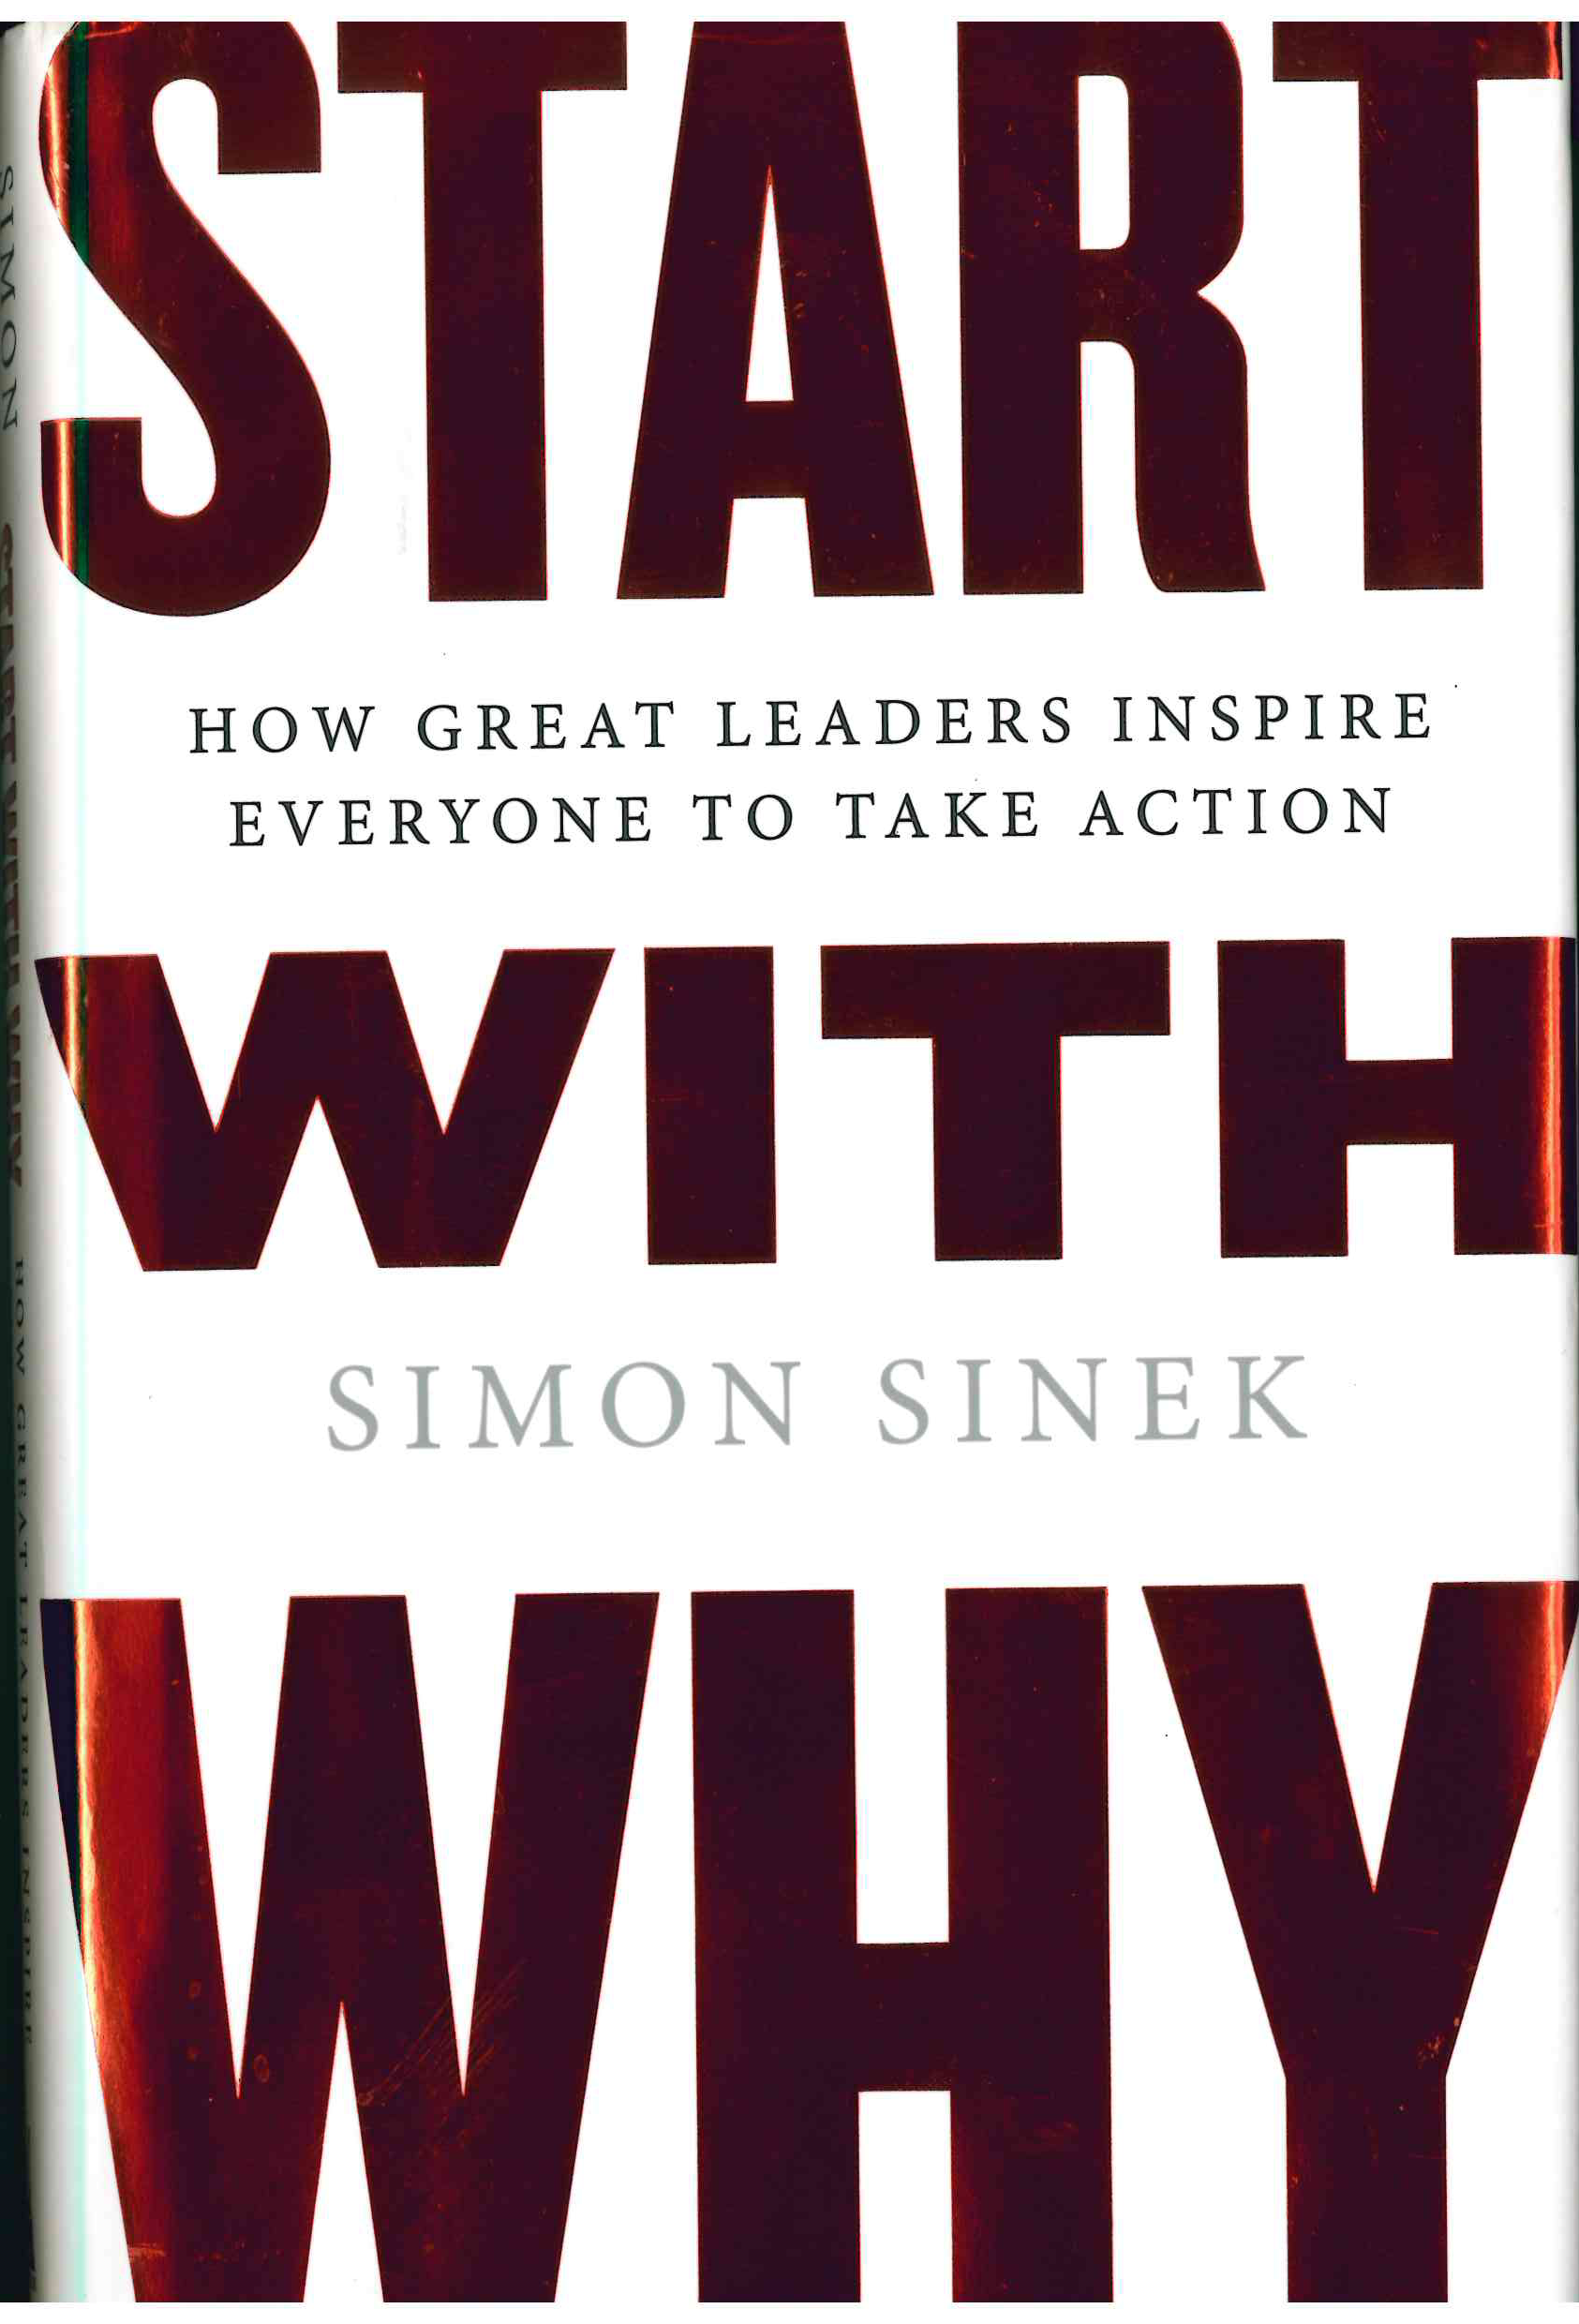 Start With Why Simon Sinek.png